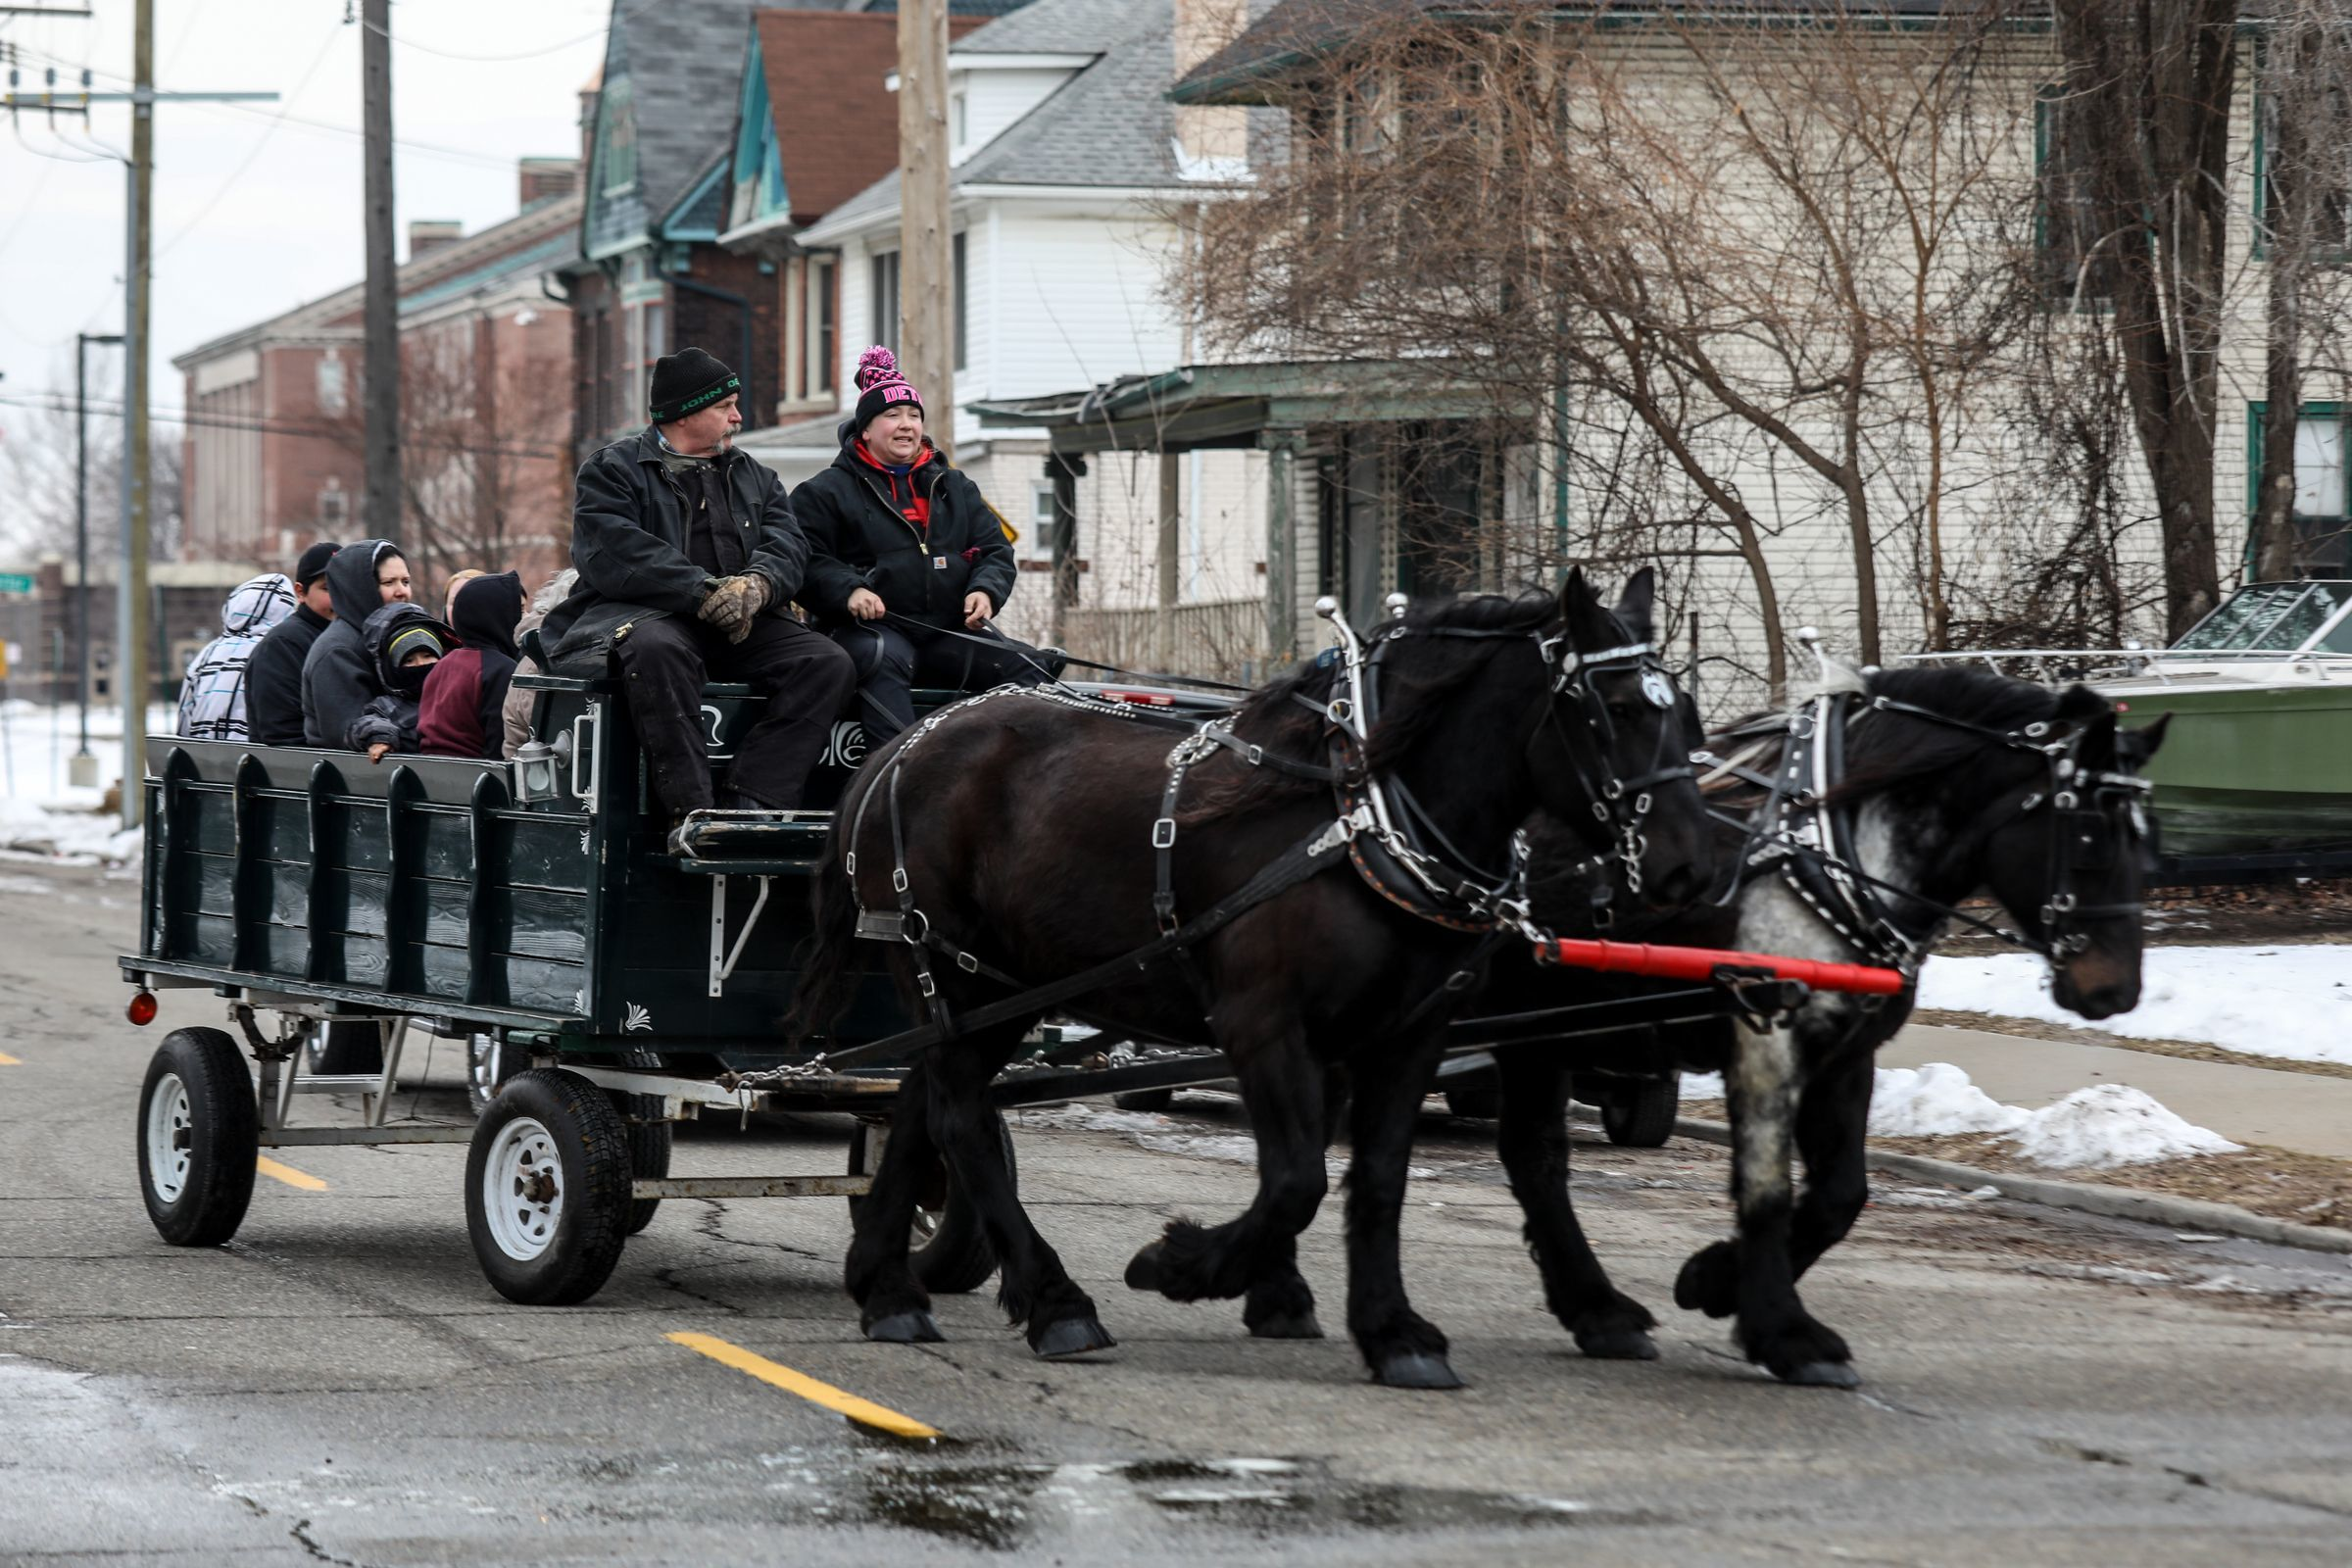 Horse-drawn carriage rides will be part of the winter carnival fun in Clark Park on Saturday.